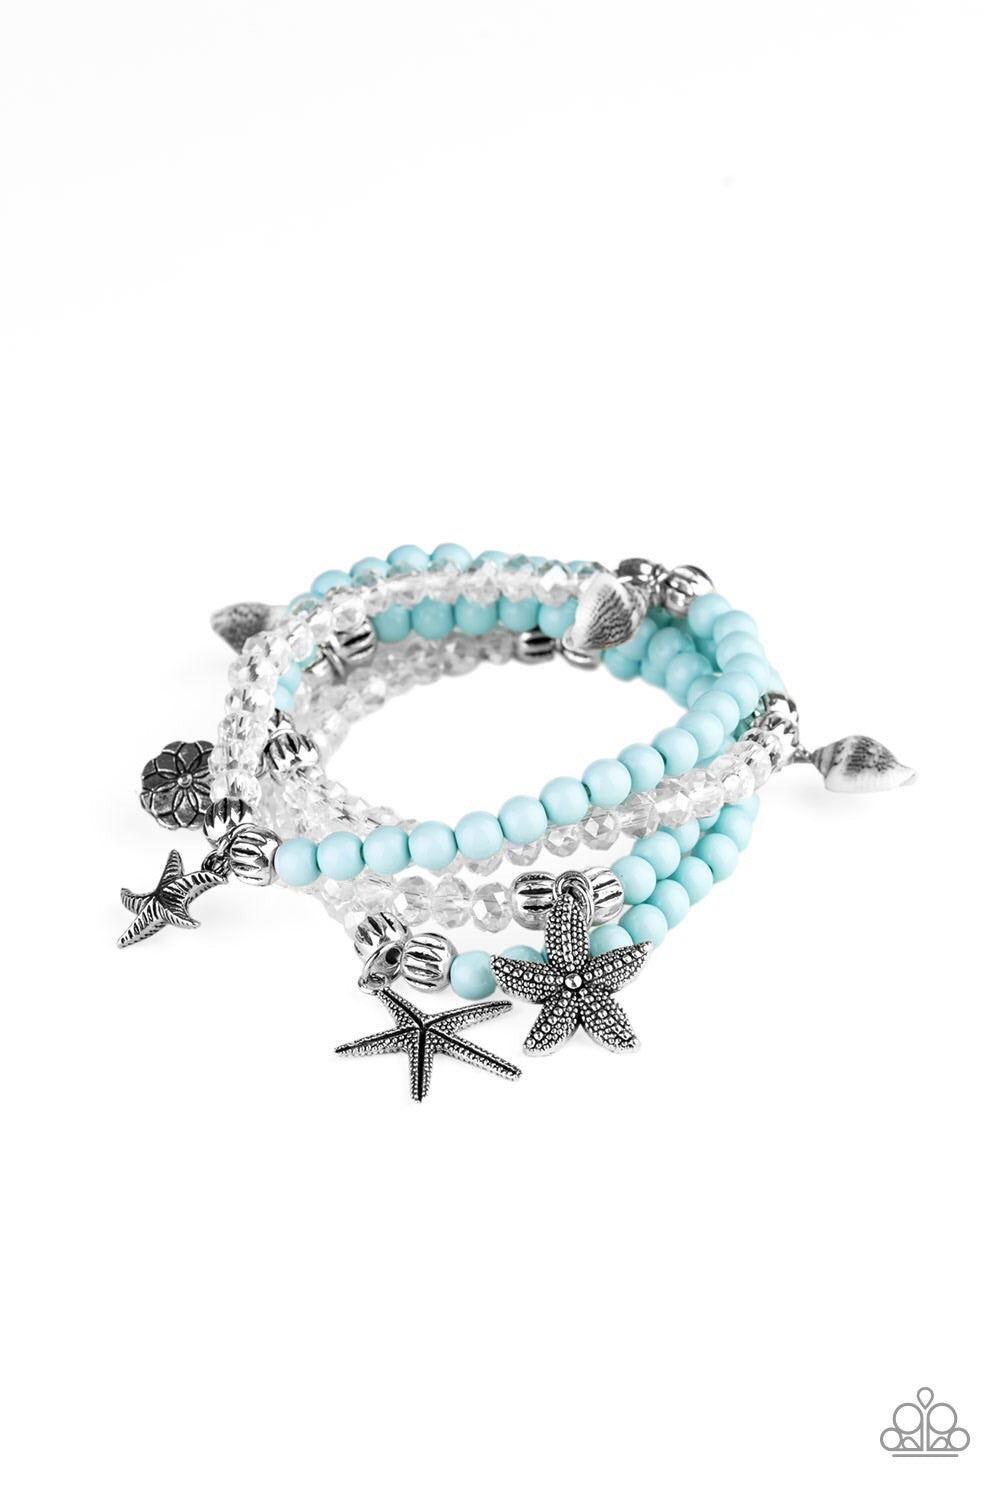 Paparazzi Ocean Breeze Charm Bracelet - Blue